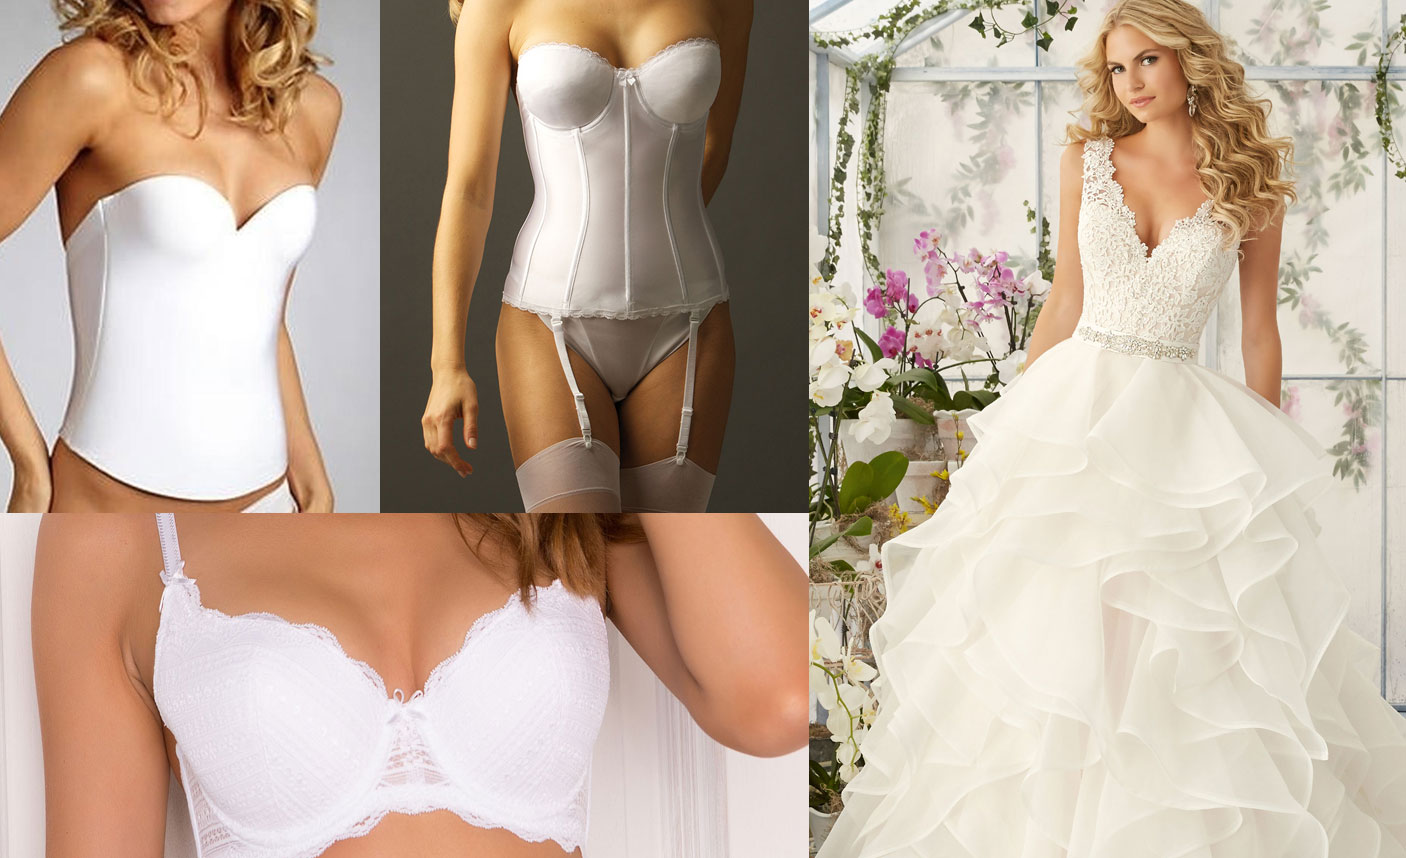 Bras for wedding dresses bridesmaid dresses for What undergarments for wedding dress shopping